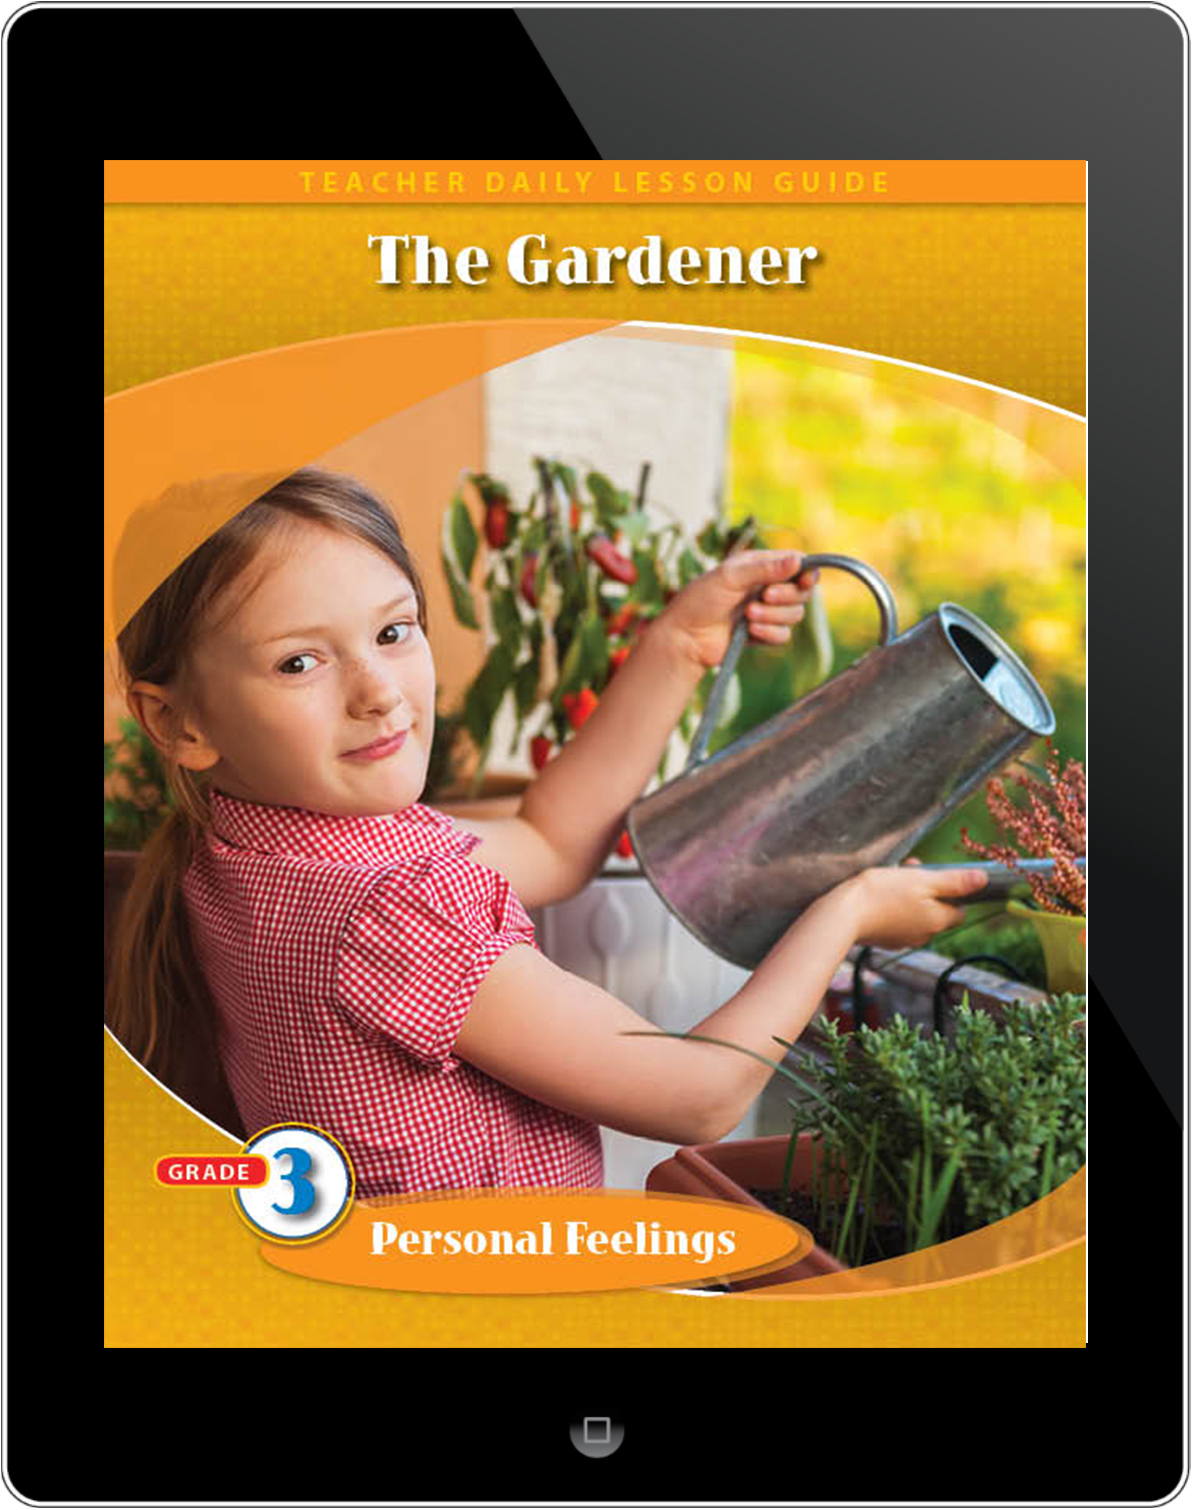 Pathways2.0 Grade 3 Personal Feelings Unit: The Gardener Daily Lesson Guide 5 Year License